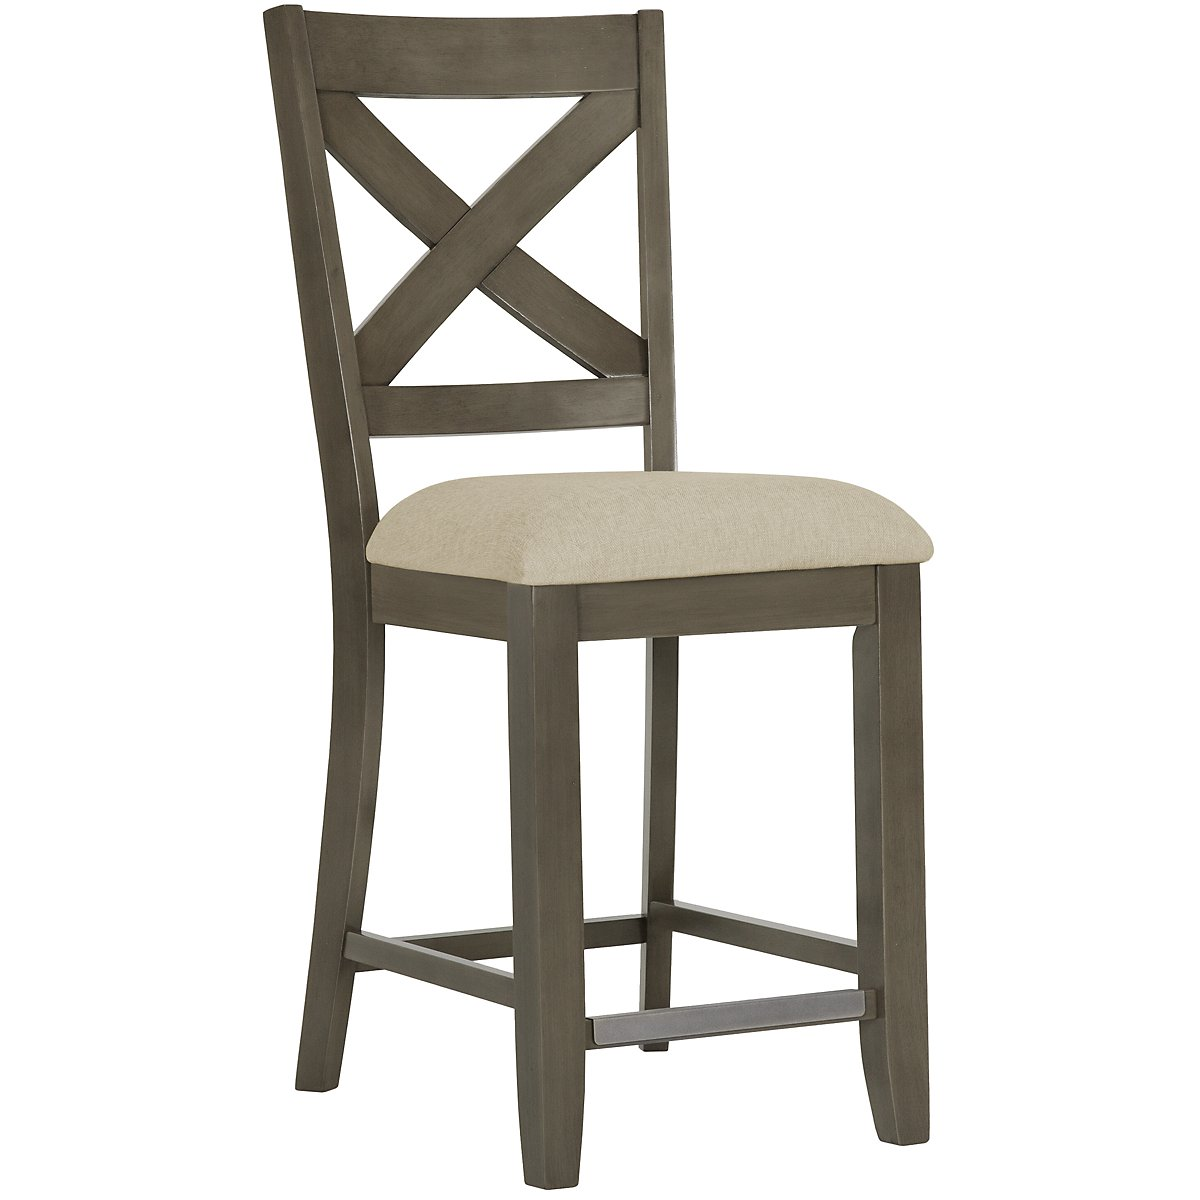 City furniture omaha gray 24 wood barstool for Outdoor furniture omaha